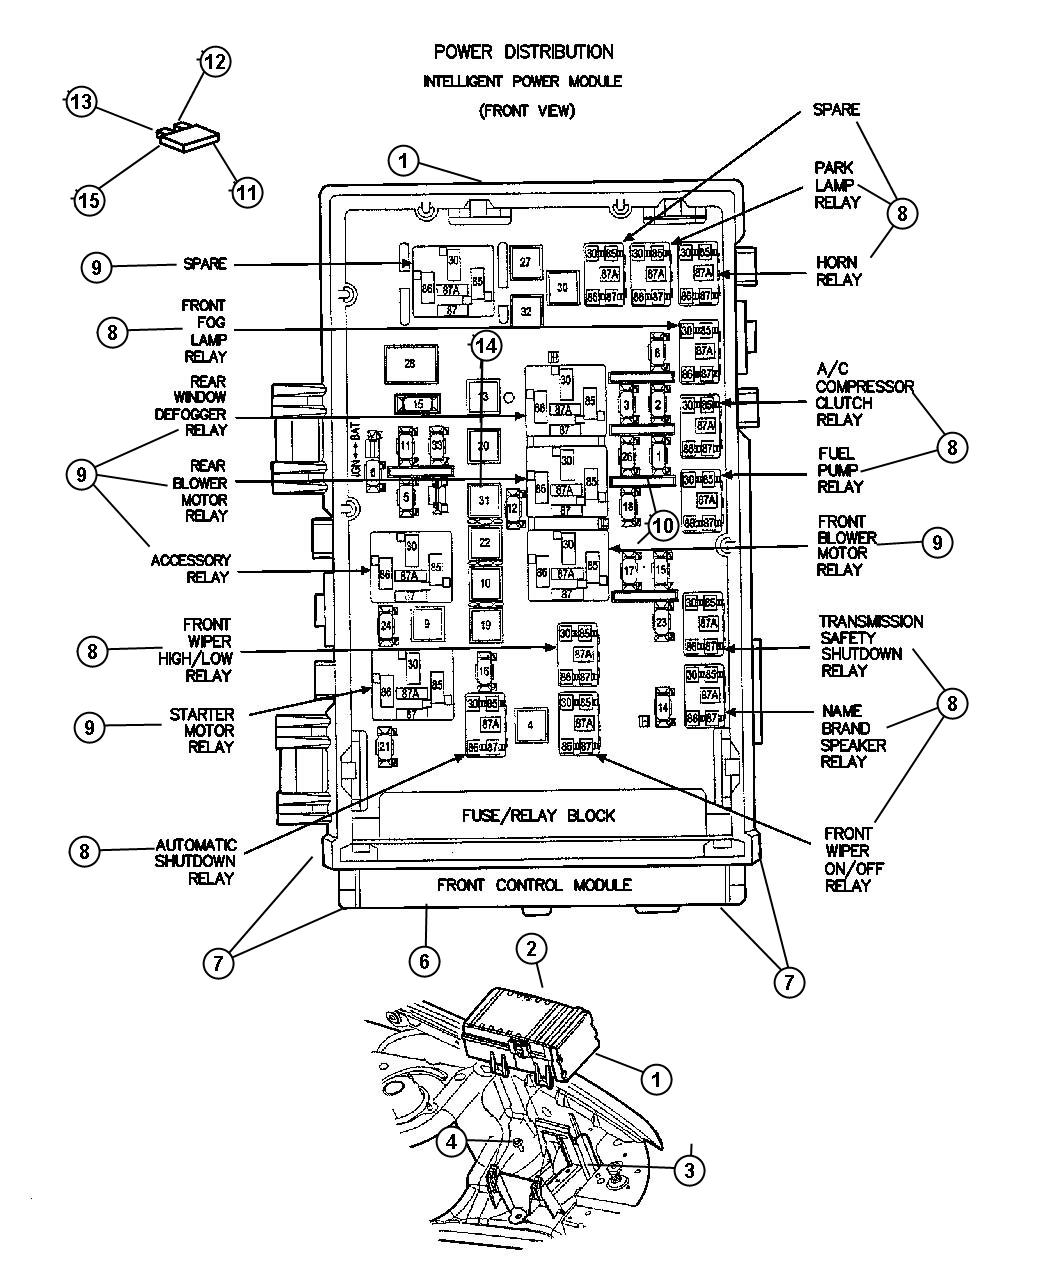 2001 Chrysler Voyager Fuse Panel Diagram, 2001, Free